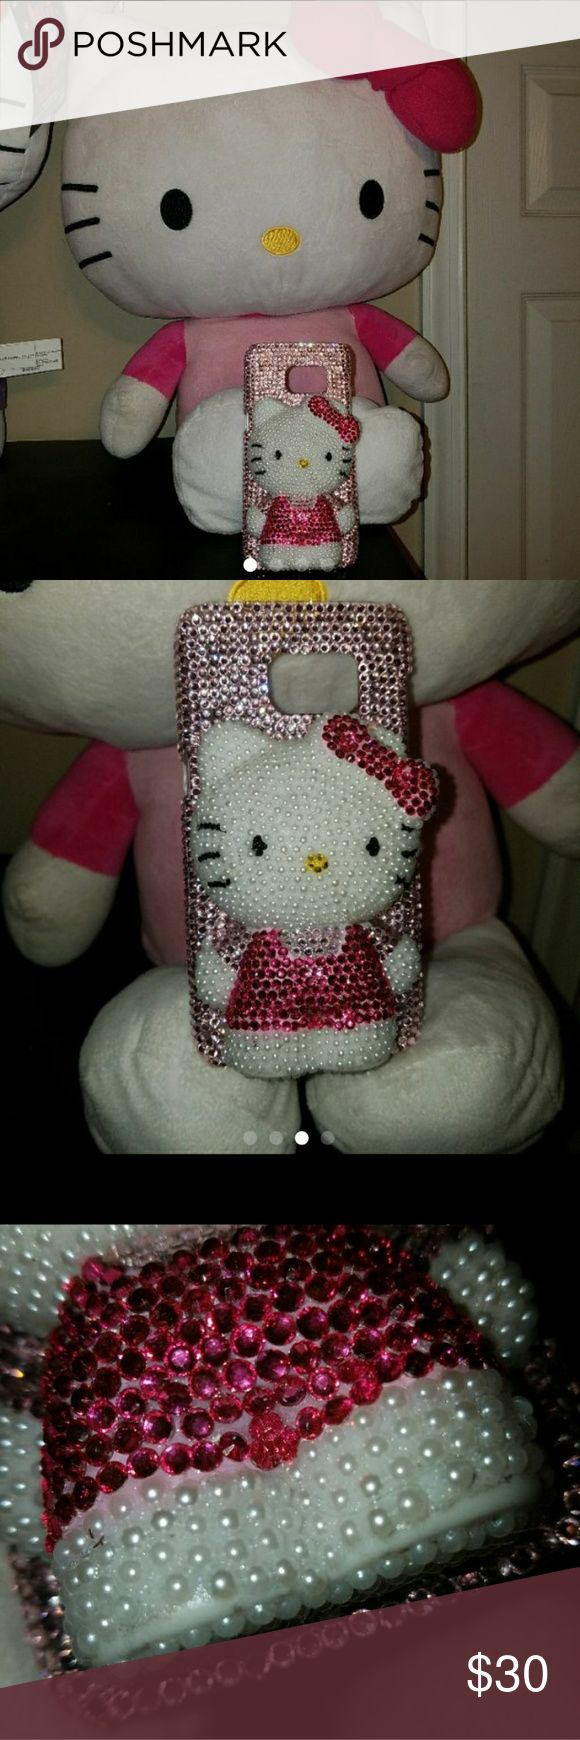 HELLO KITTY Samsung Galaxy S7  Phone Case Beautiful phone case. Lightly used, some wear and missing pearls along the bottom of her feet. Lots of bling and pearls! :) It's like 3D, so it's bulky. It's very cute tho. It just took up too much room in my small bag. BRAND is Not Hello Kitty,  just posting for exposure. Accessories Phone Cases